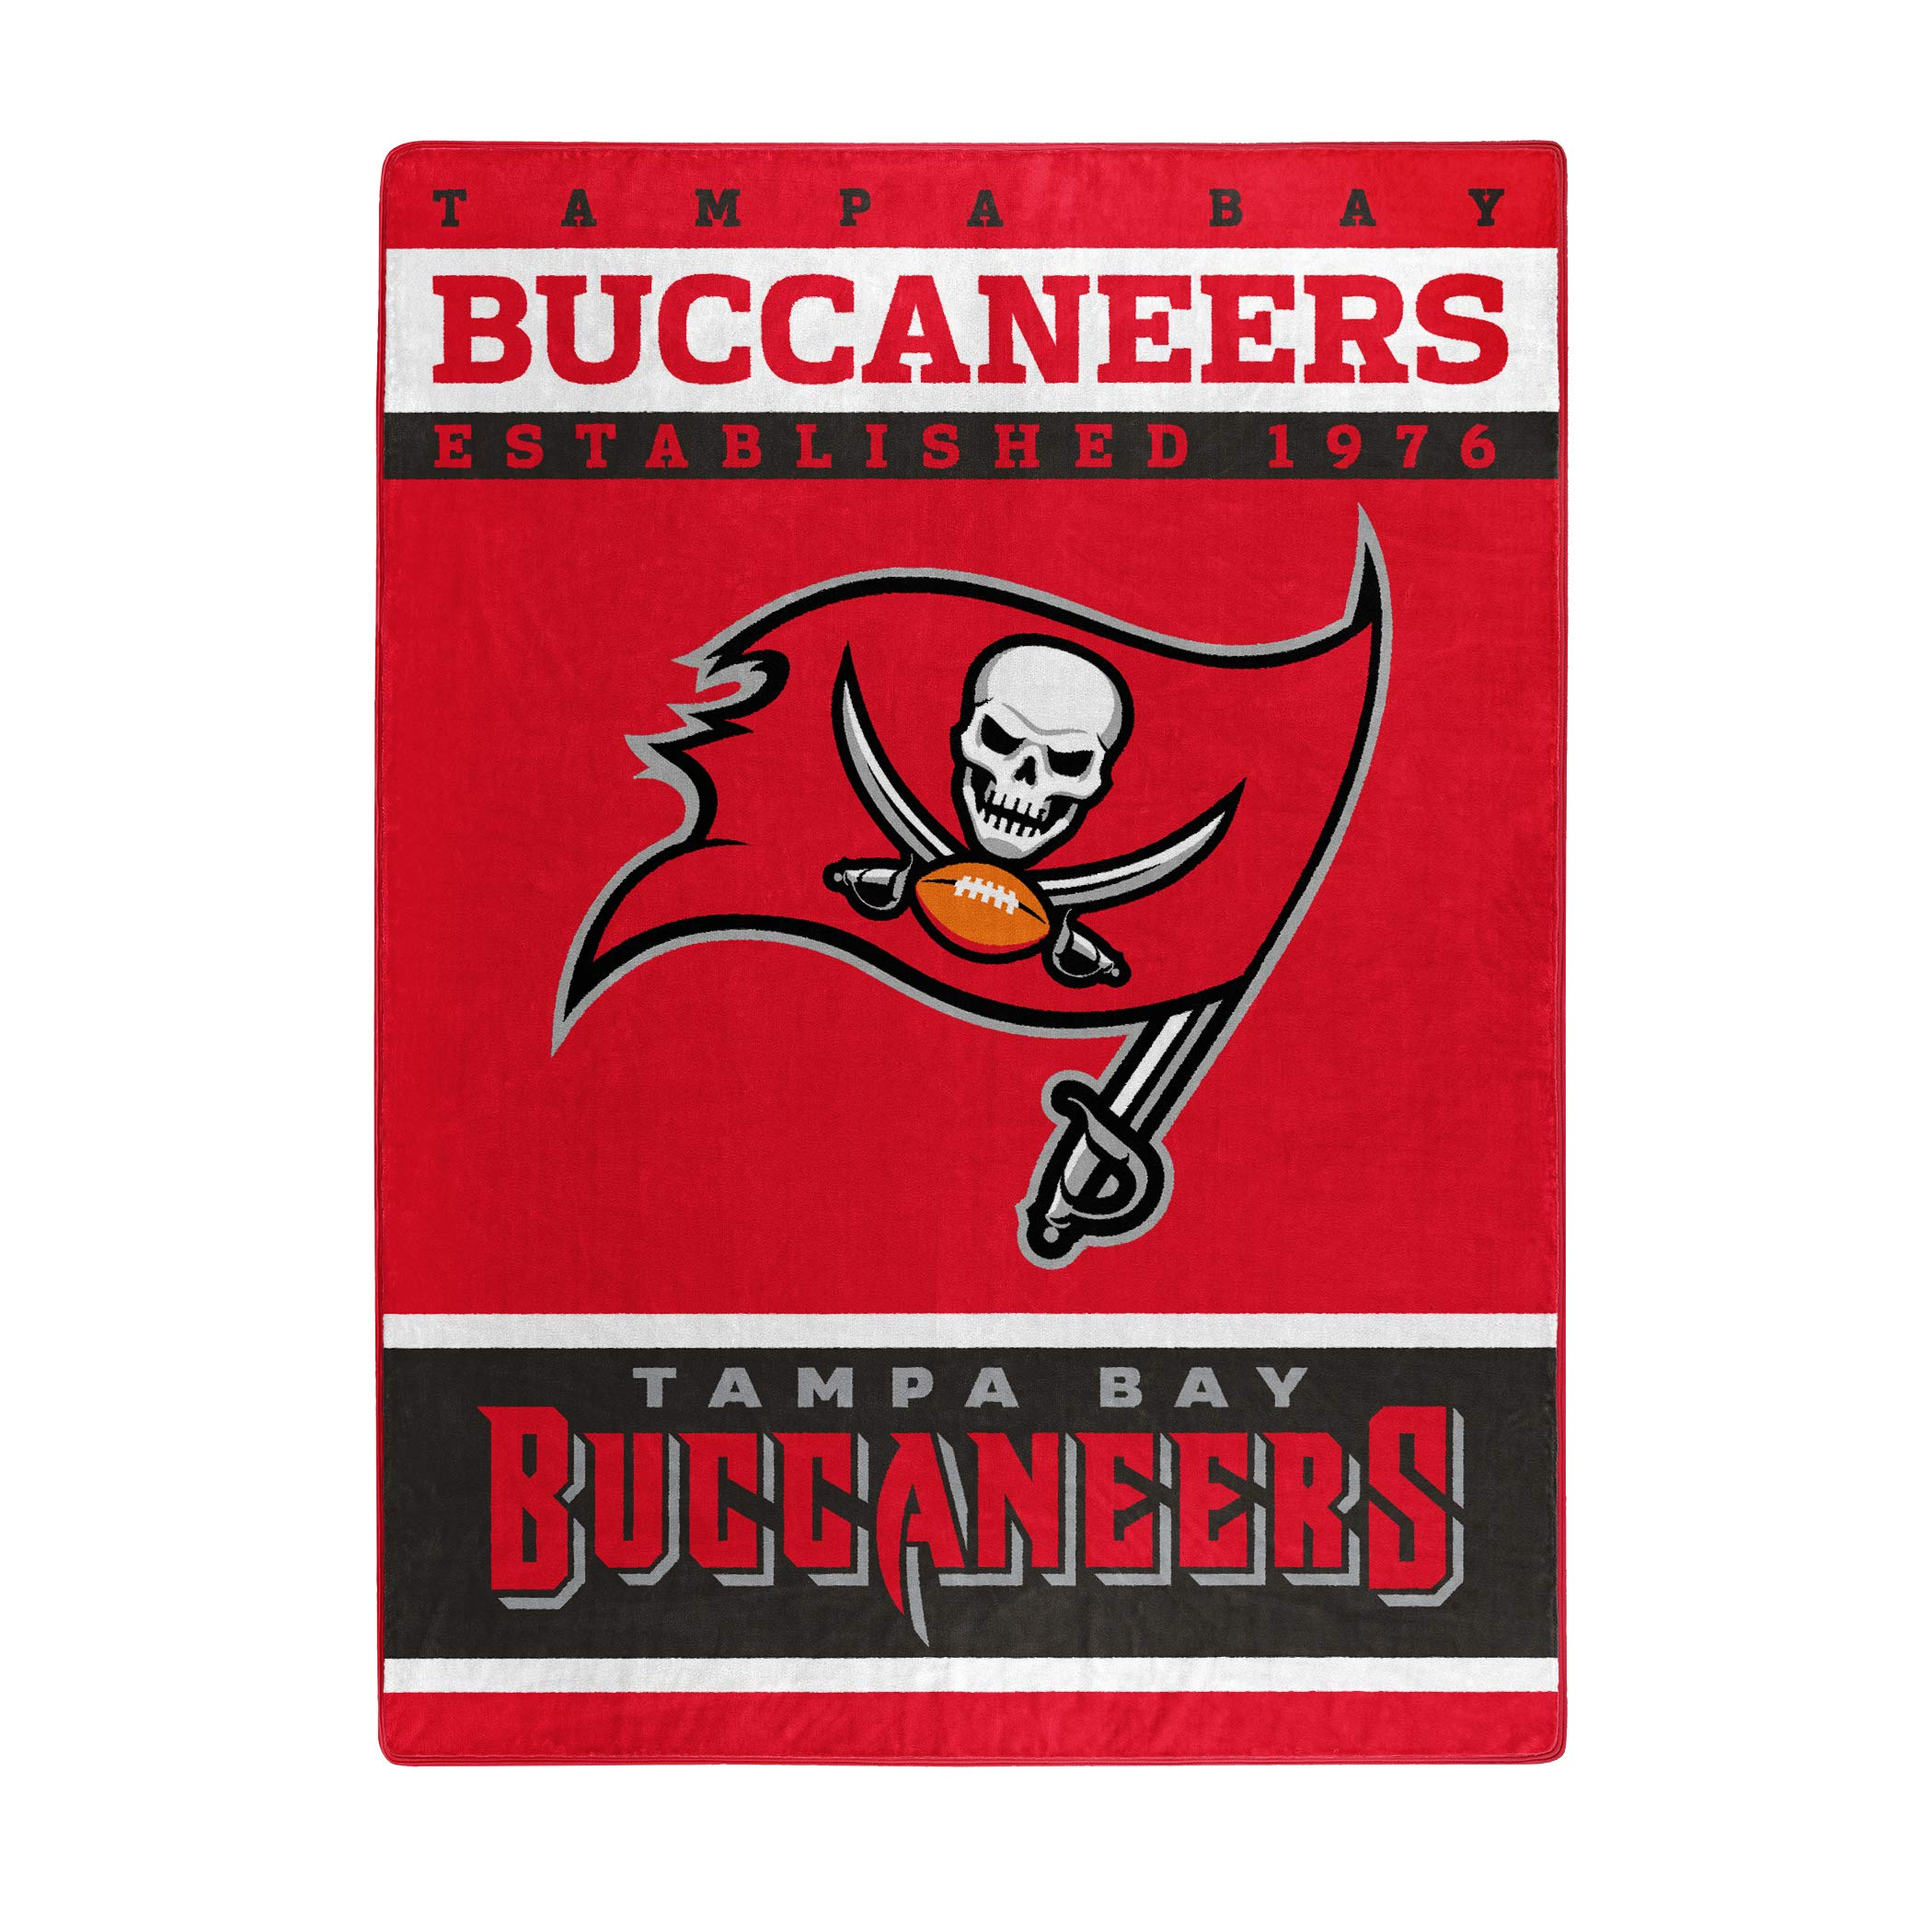 The Northwest Company Officially Licensed NFL Tampa Bay Buccaneers 12th Man Plush Raschel Throw Blanket, 60'' x 80'', Multi Color by The Northwest Company